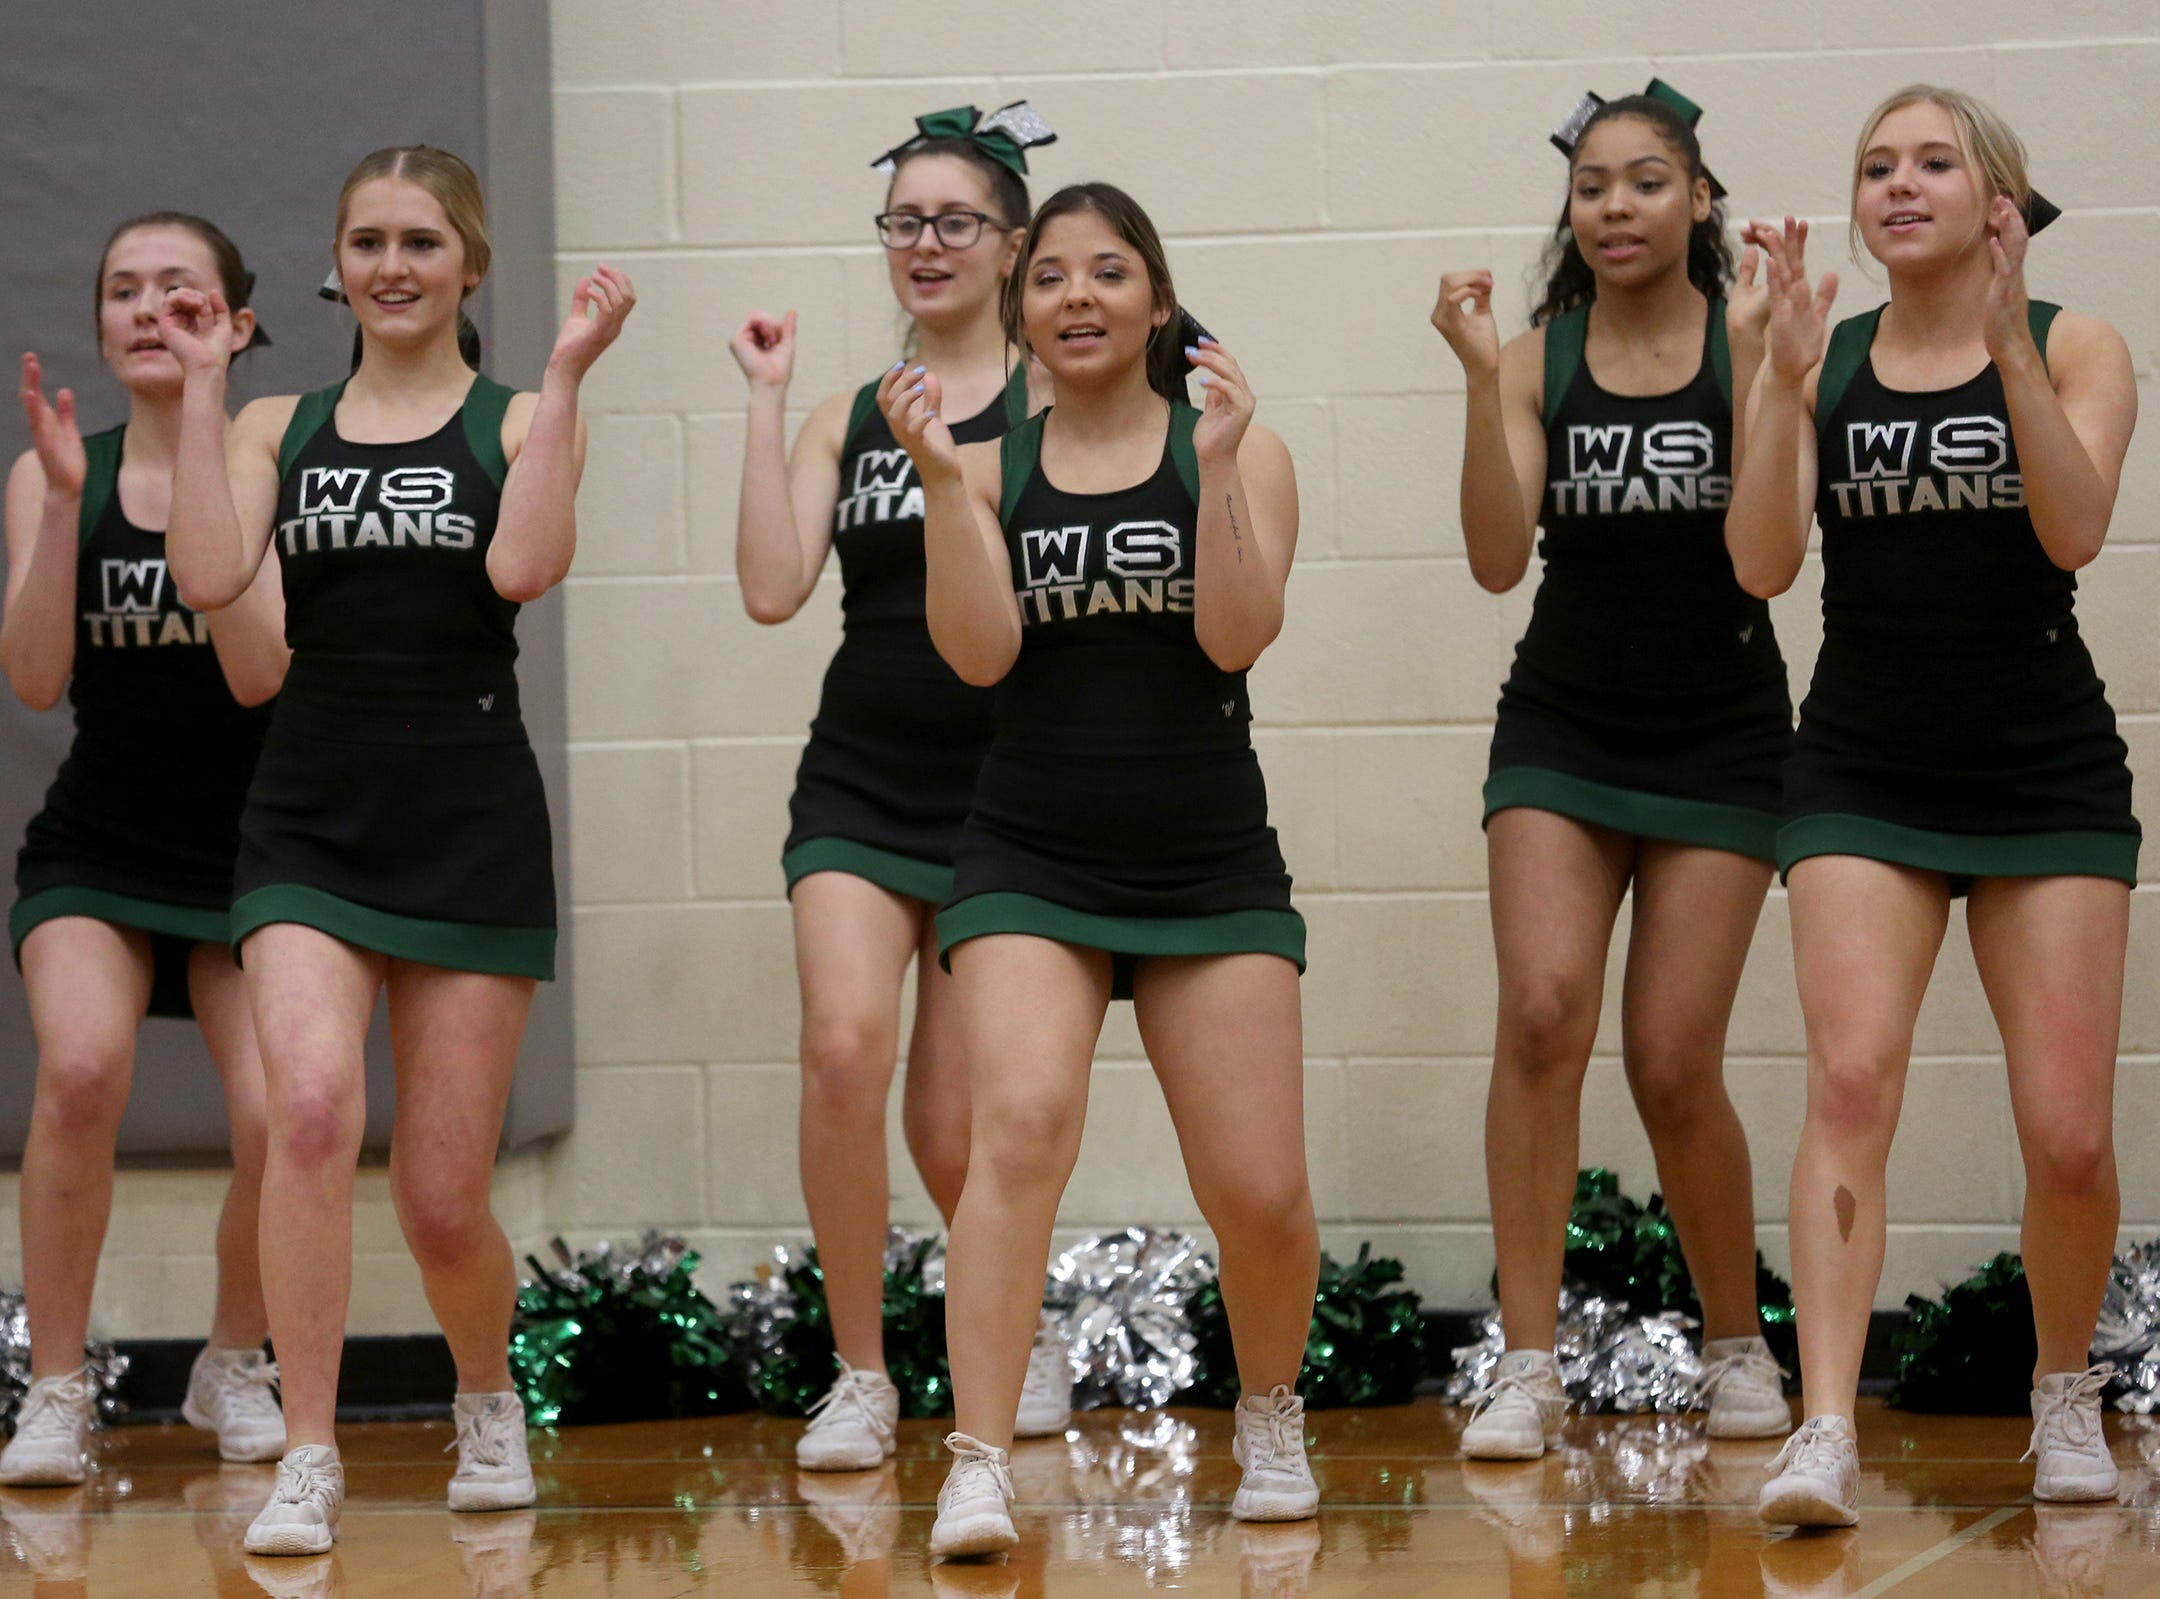 West Salem cheerleaders cheer on their team during the West Salem vs. Westview 6A Boys Basketball State Championships first round at West Salem High School in Salem on Tuesday, Feb. 26, 2019.